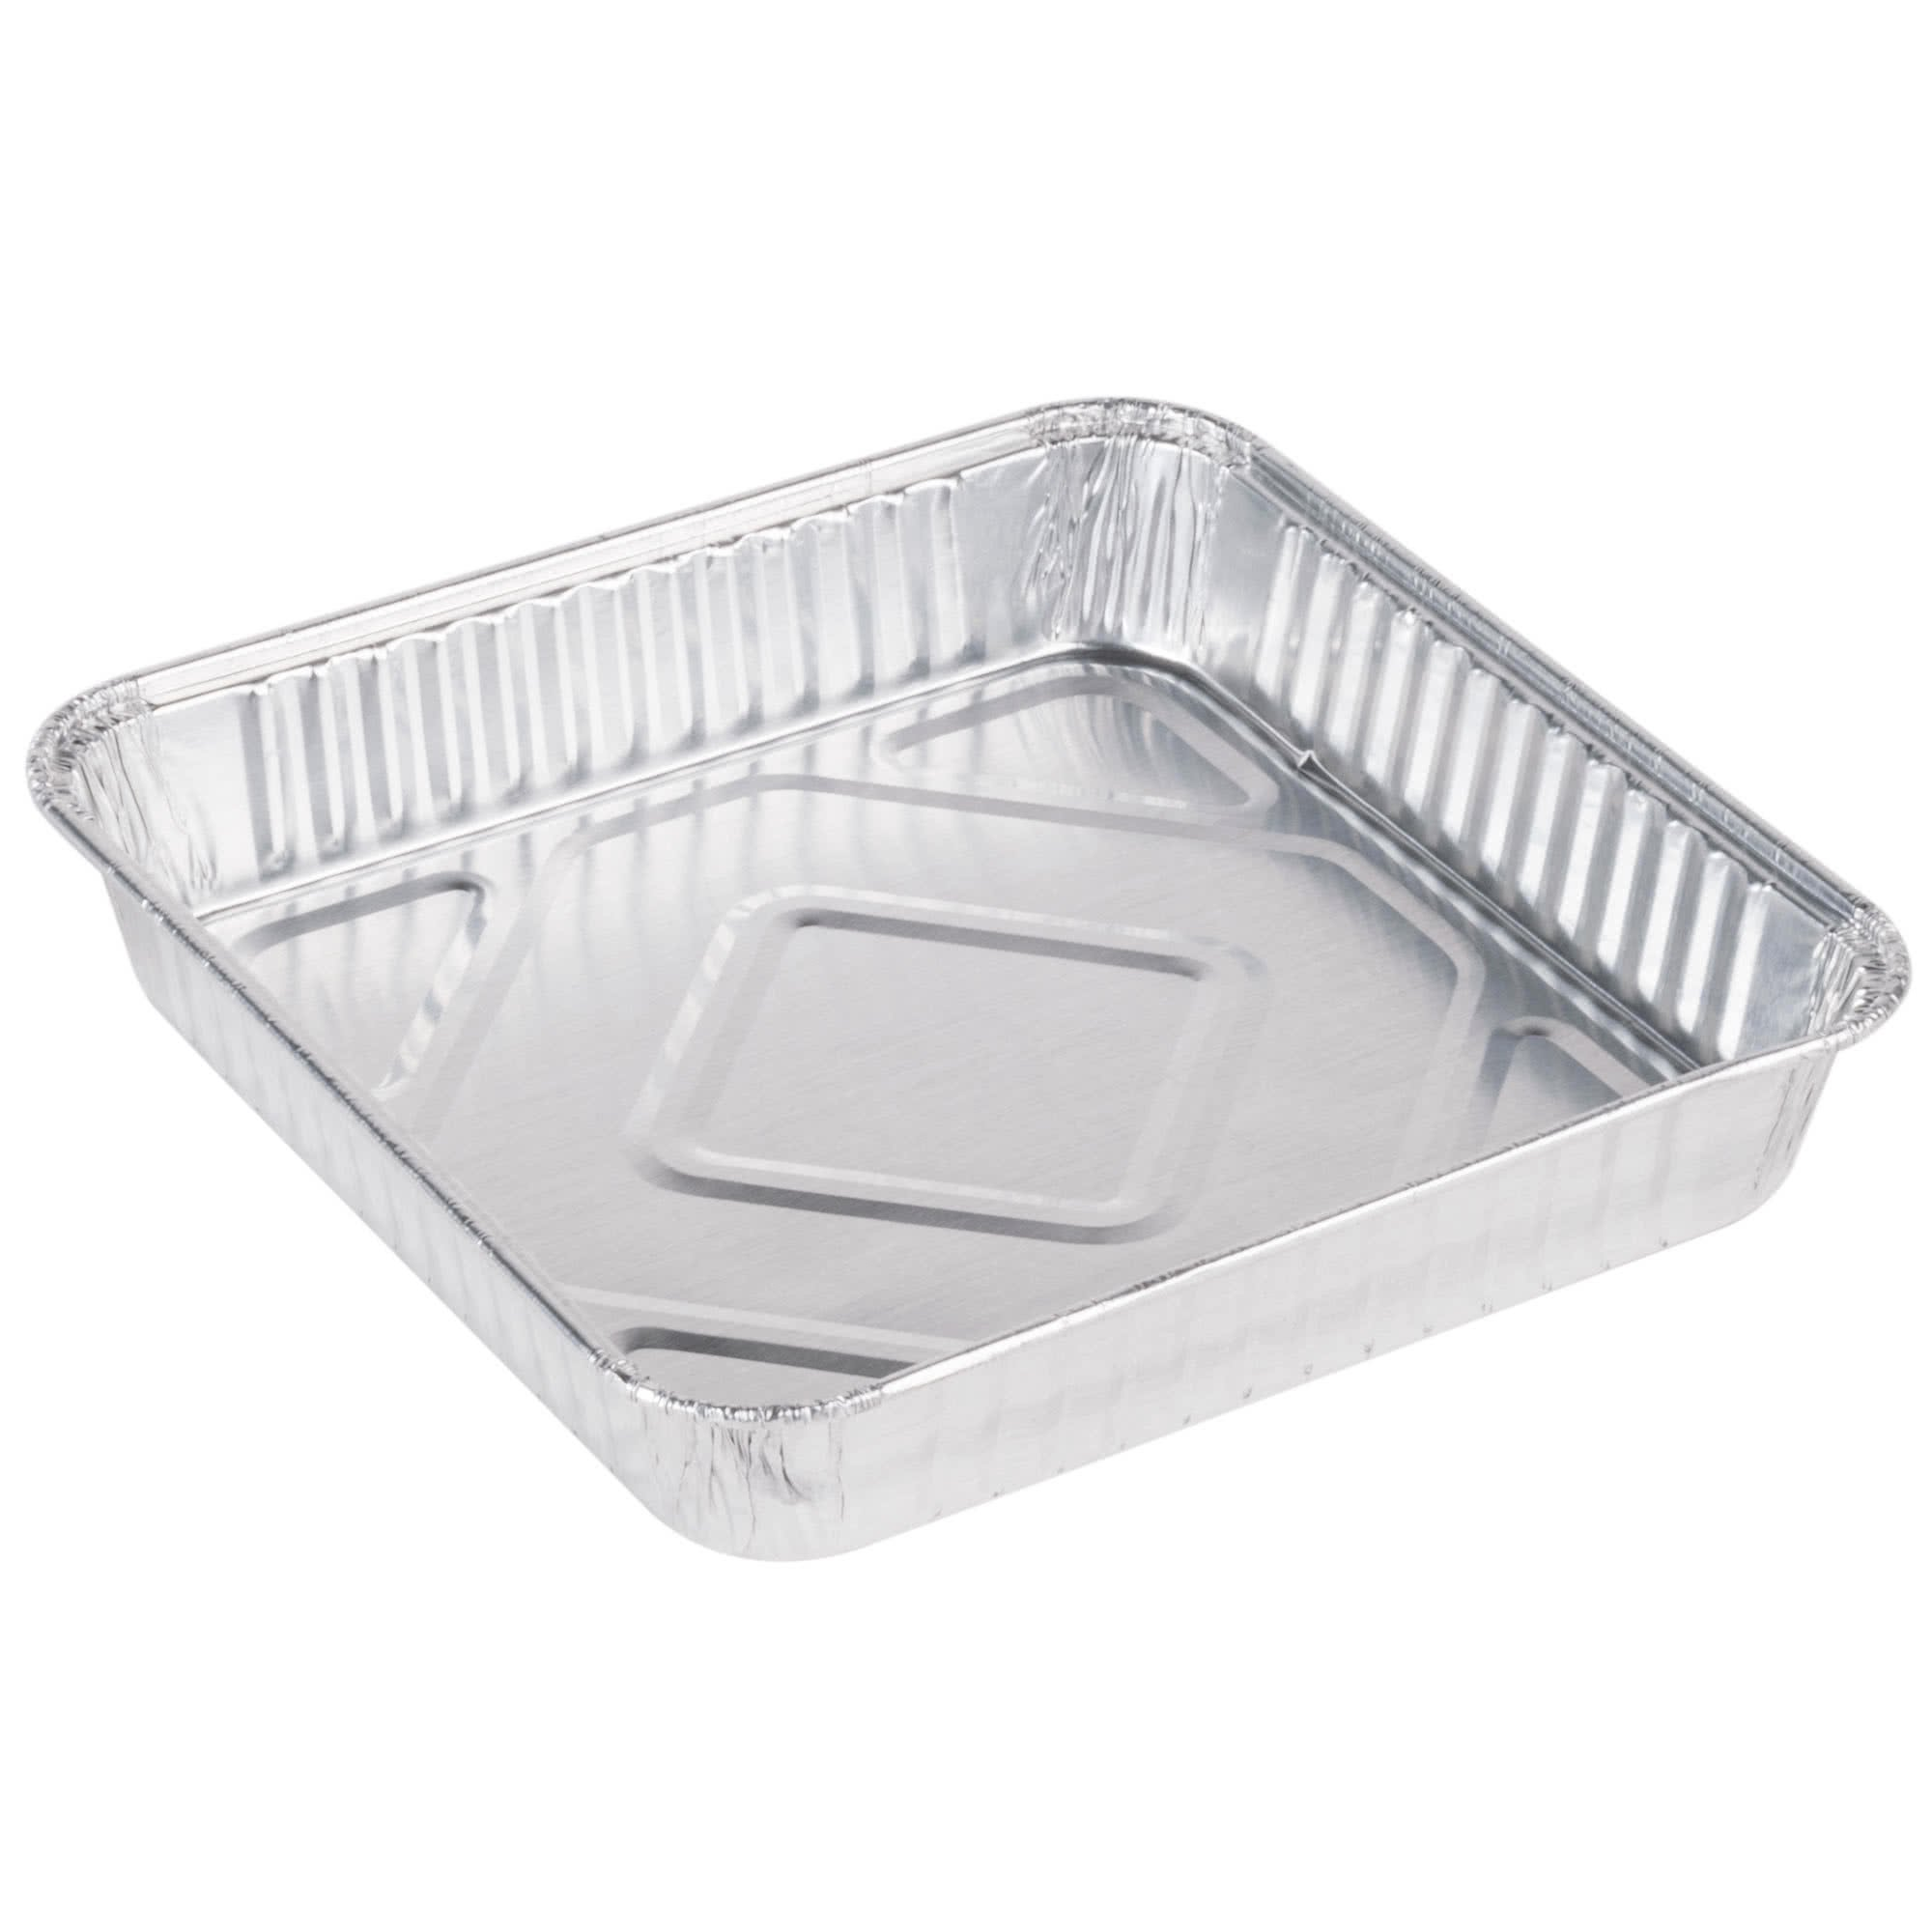 "Details about Pack of 30 Extra-Thick Disposable Aluminum Baking Pans |  Standard Size 8"" x"